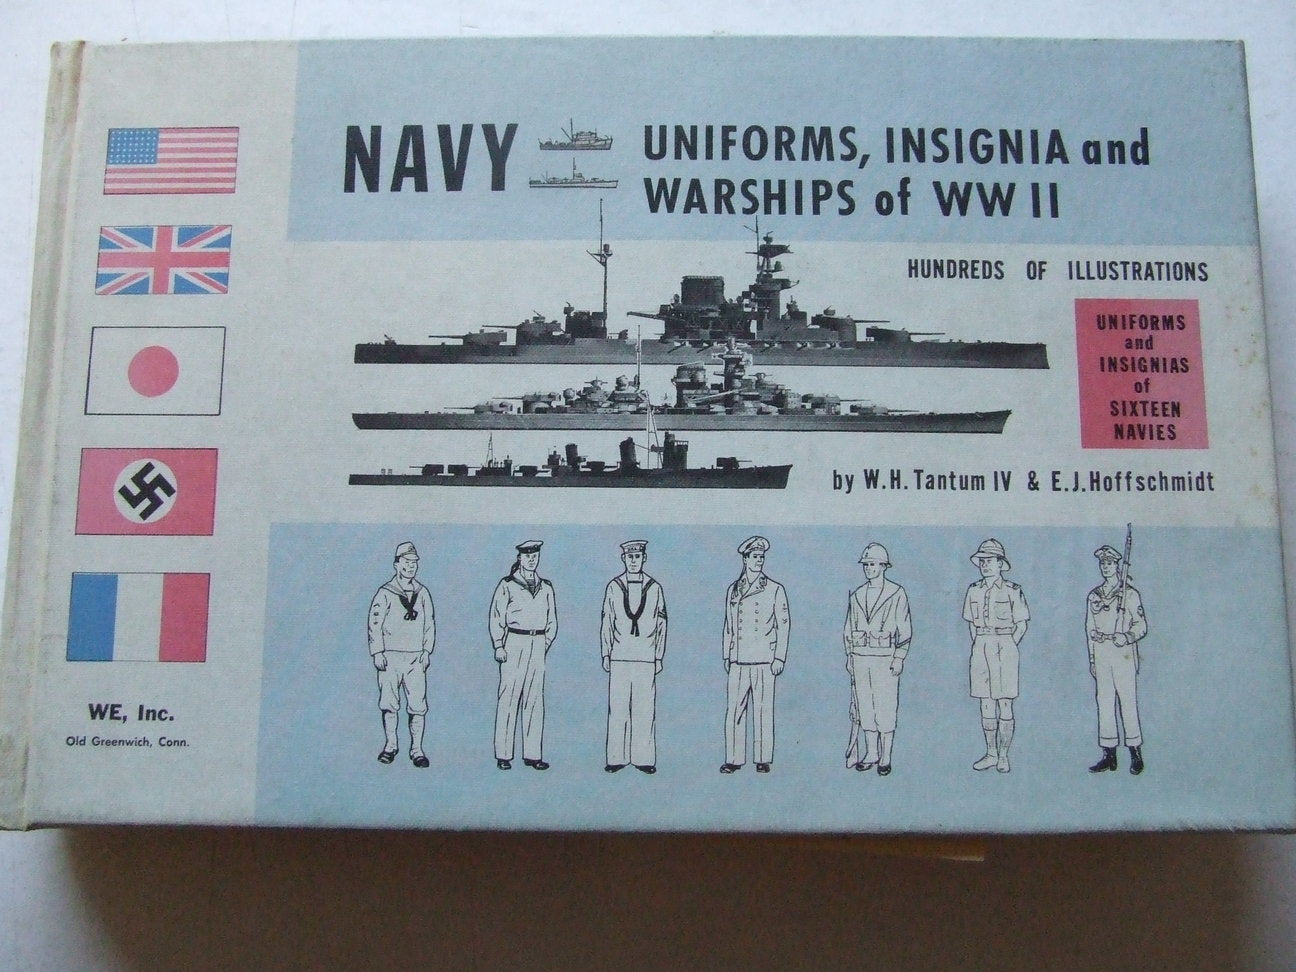 Navy Uniforms, Insignia and Warships of World War II